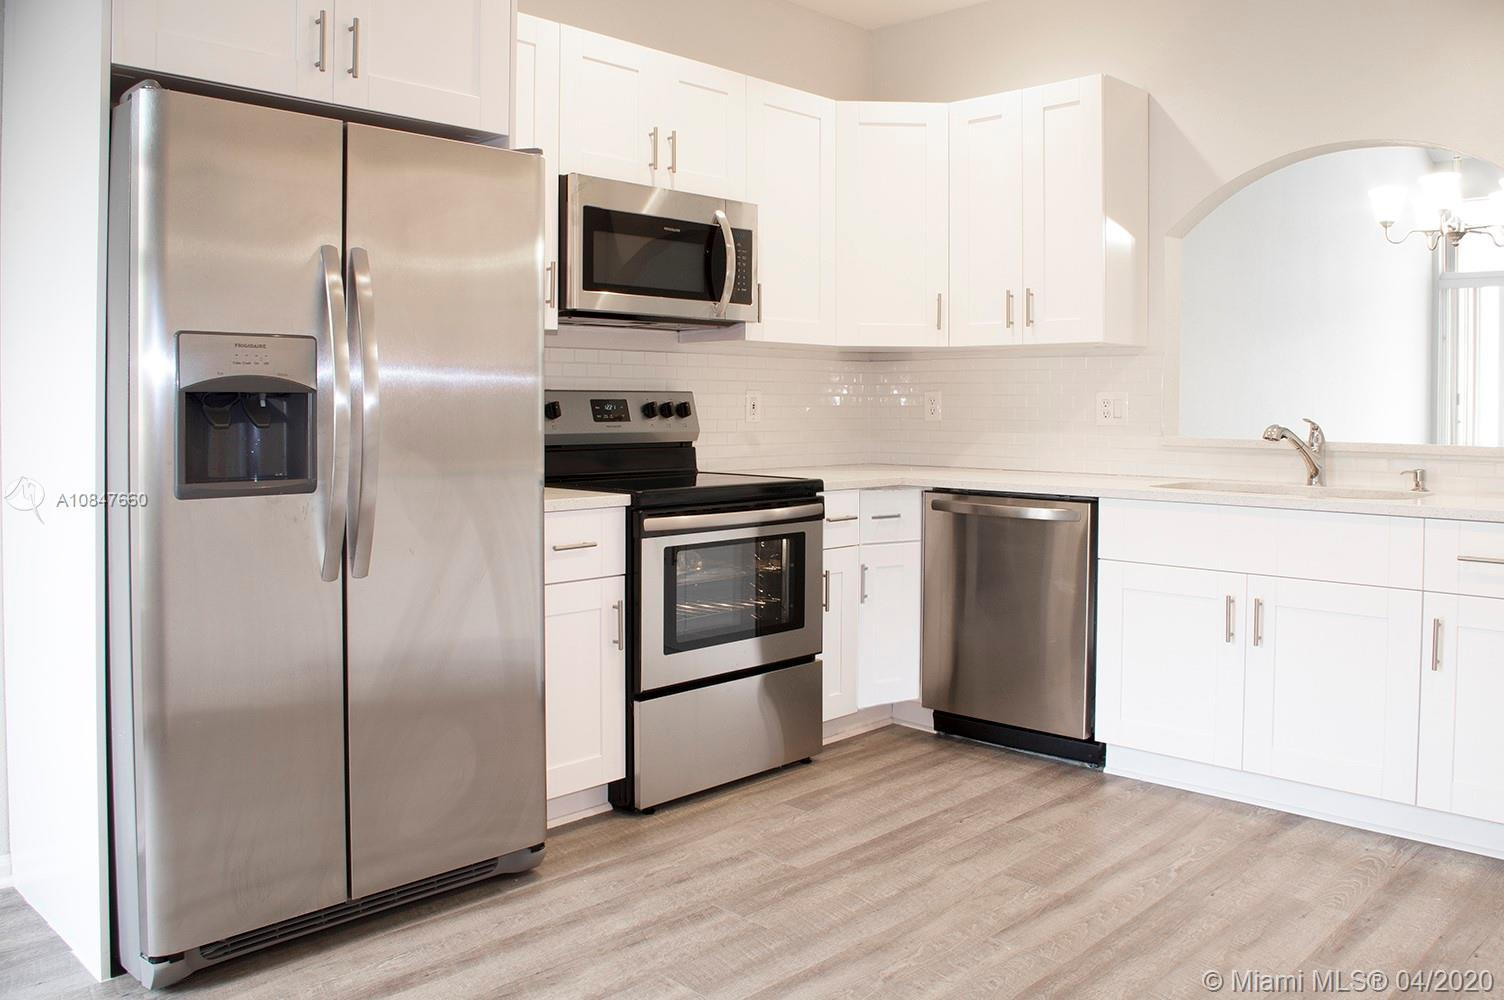 A Beautiful Two story Three Bedroom Townhouse with a large size kitchen, Master bedroom Suite with a